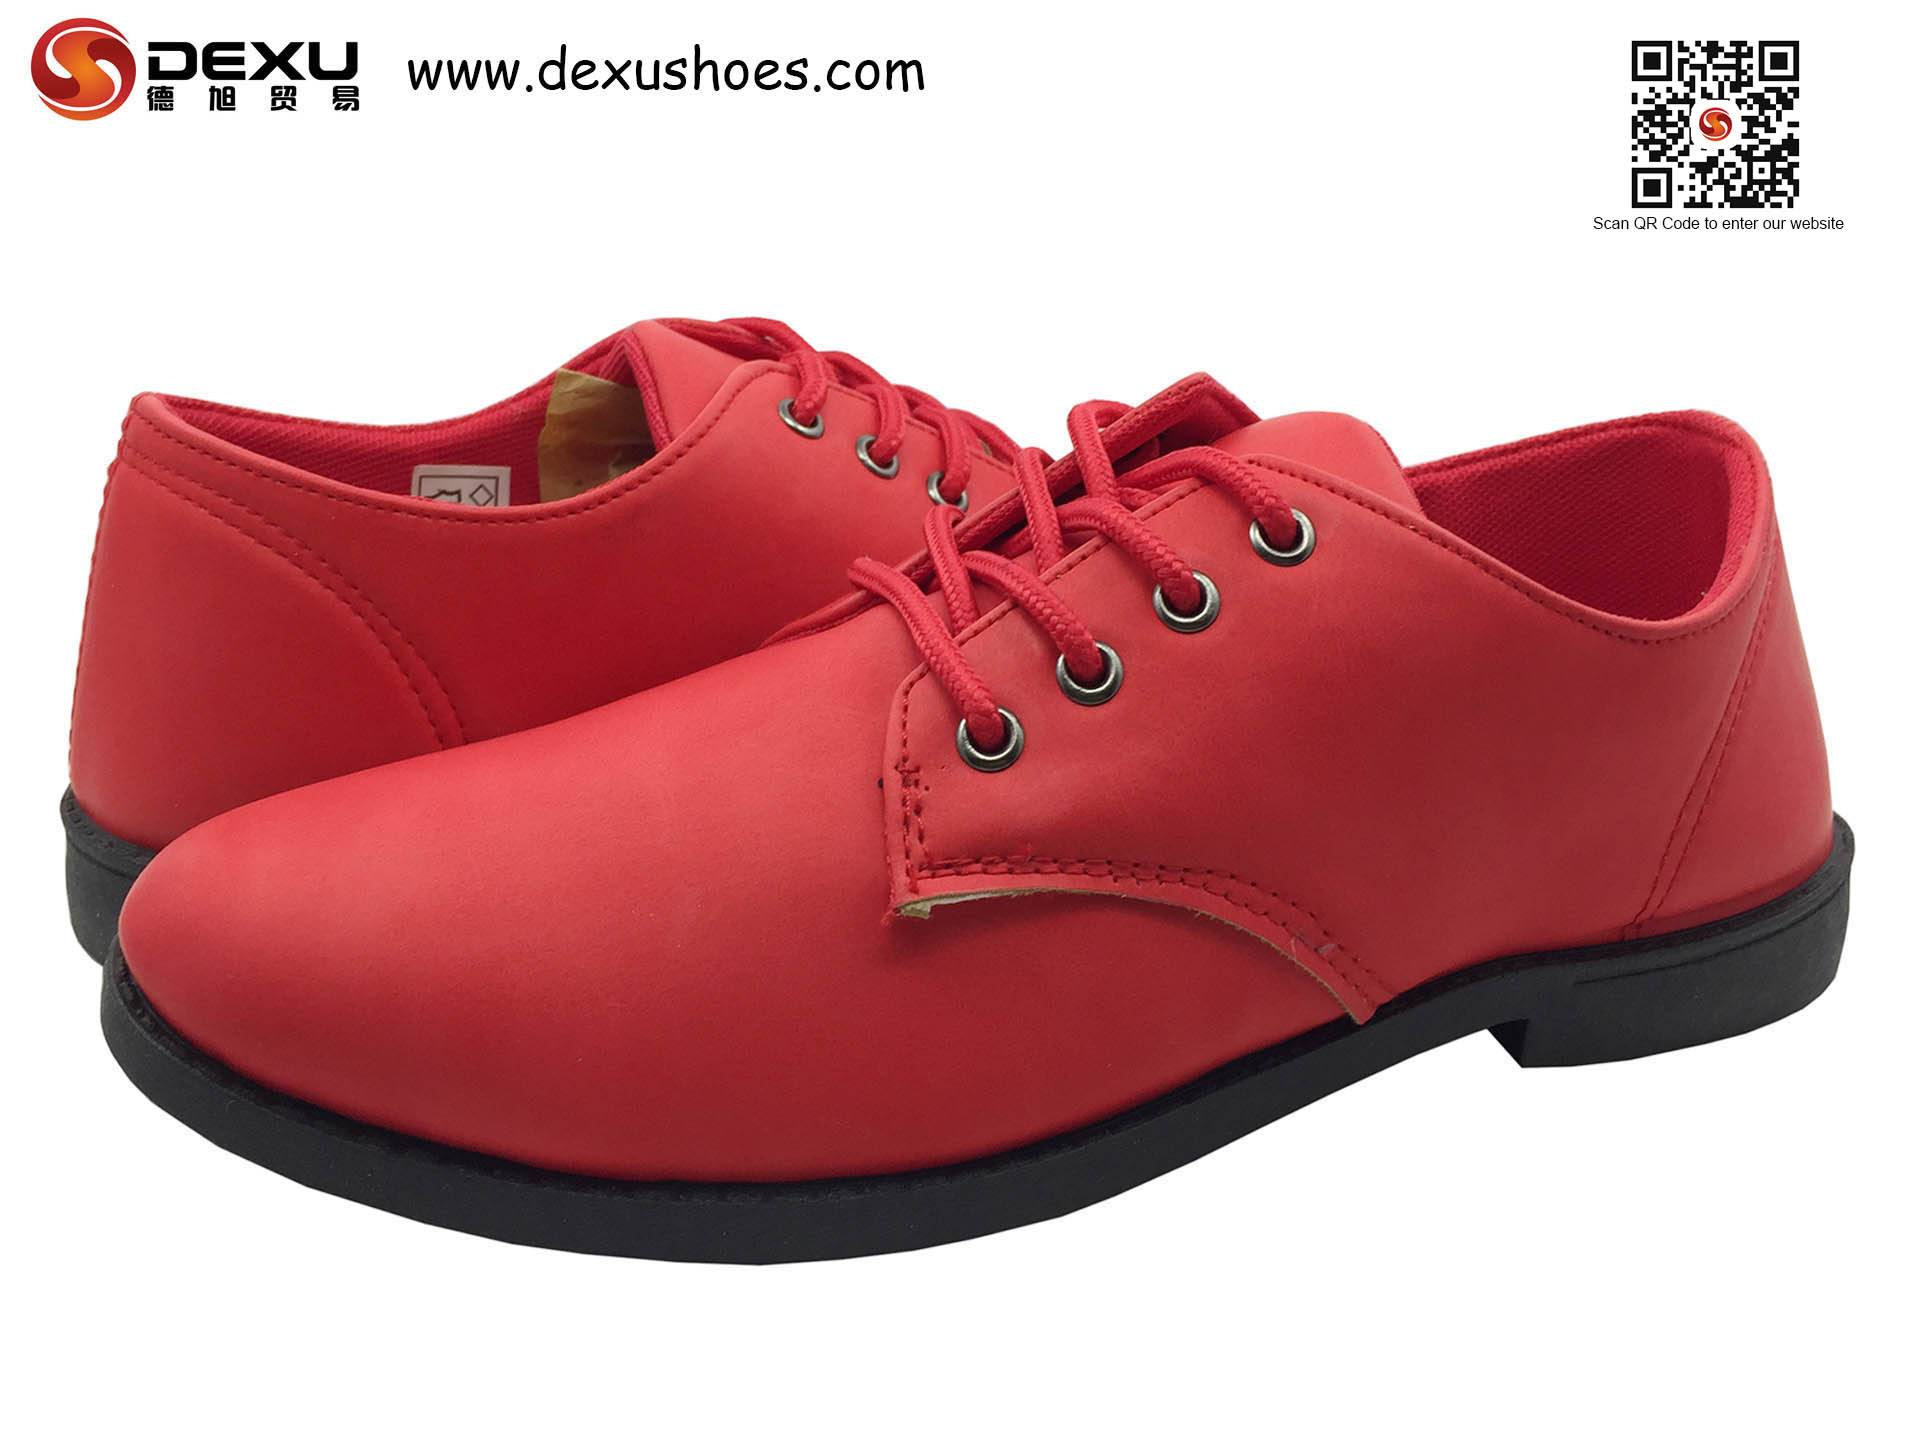 DEXU New model mens casual shoes